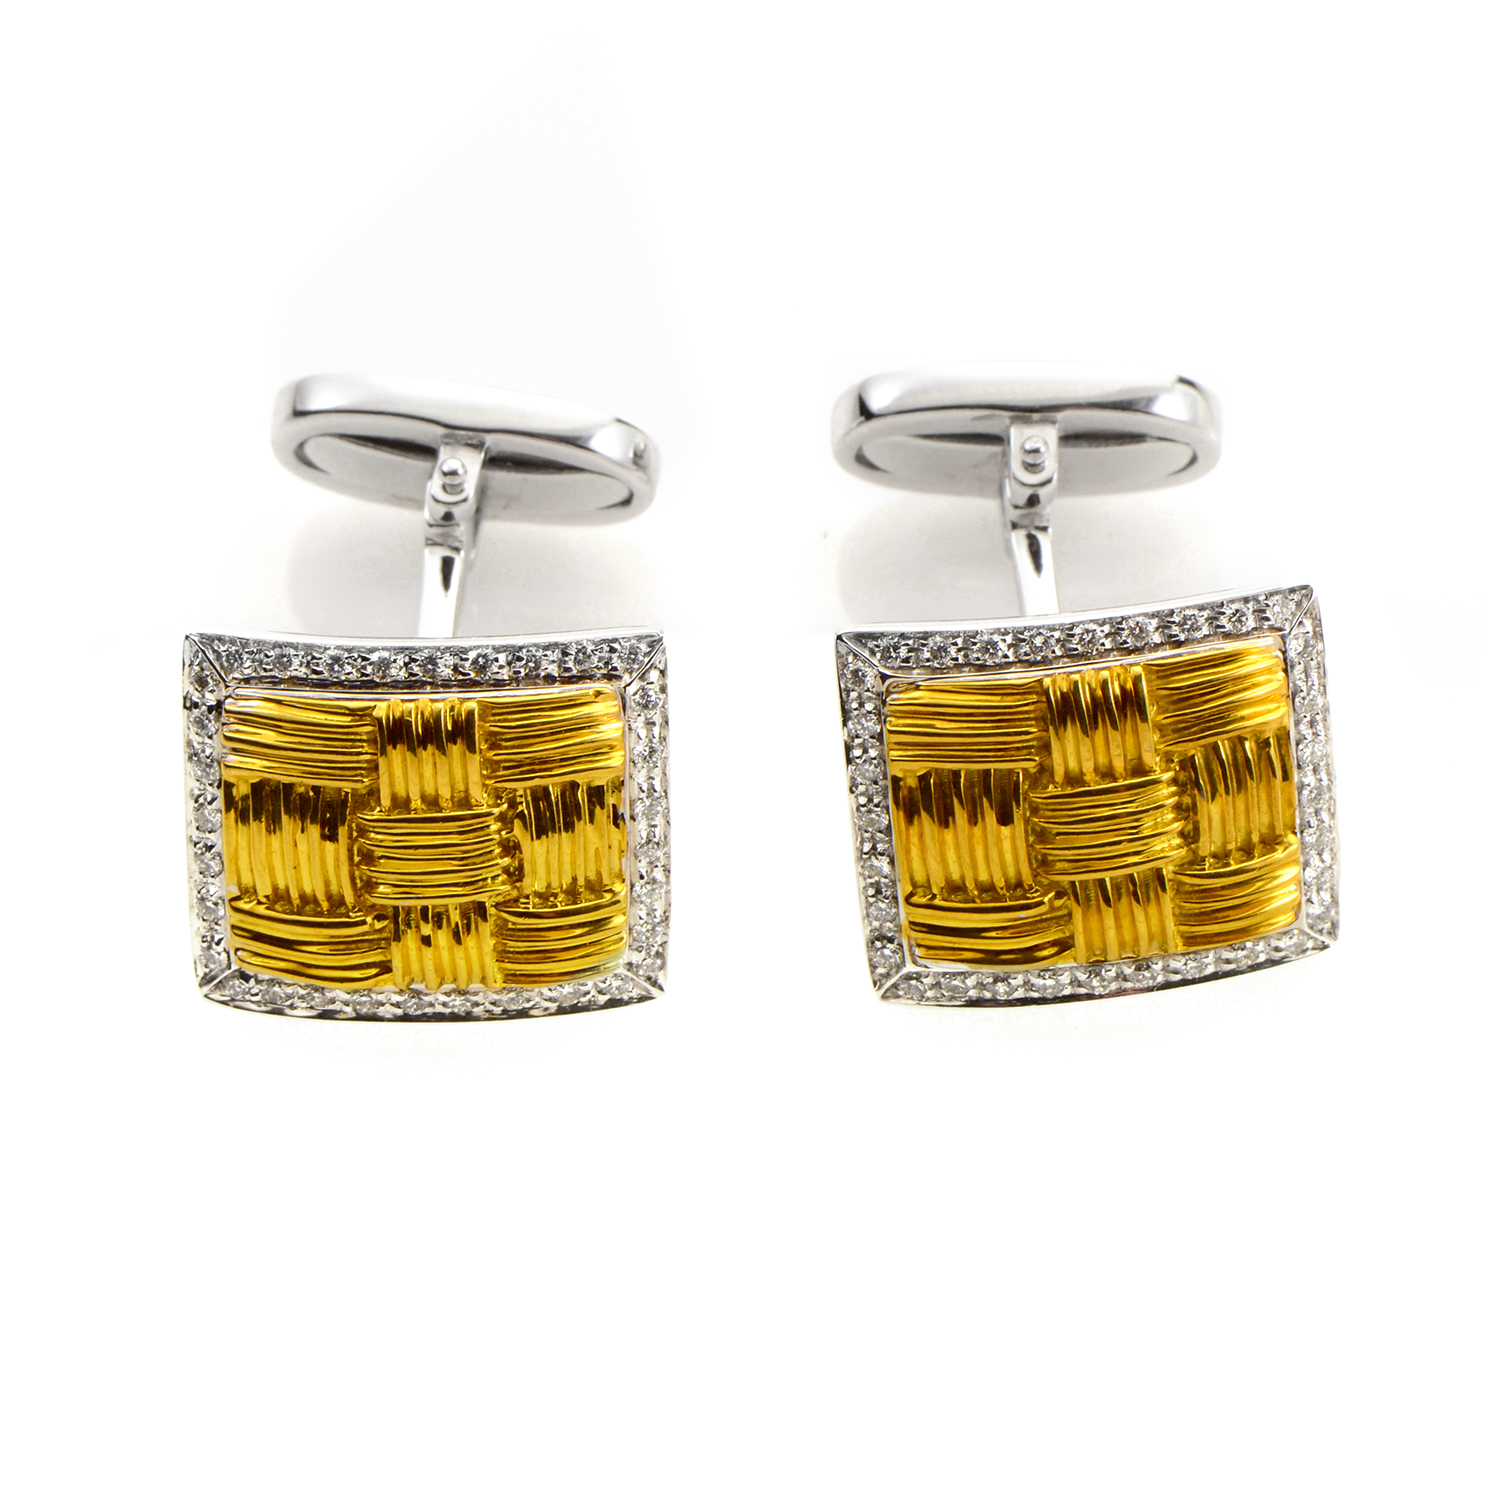 18K White Yellow Gold & Diamond Magnifica Cufflinks